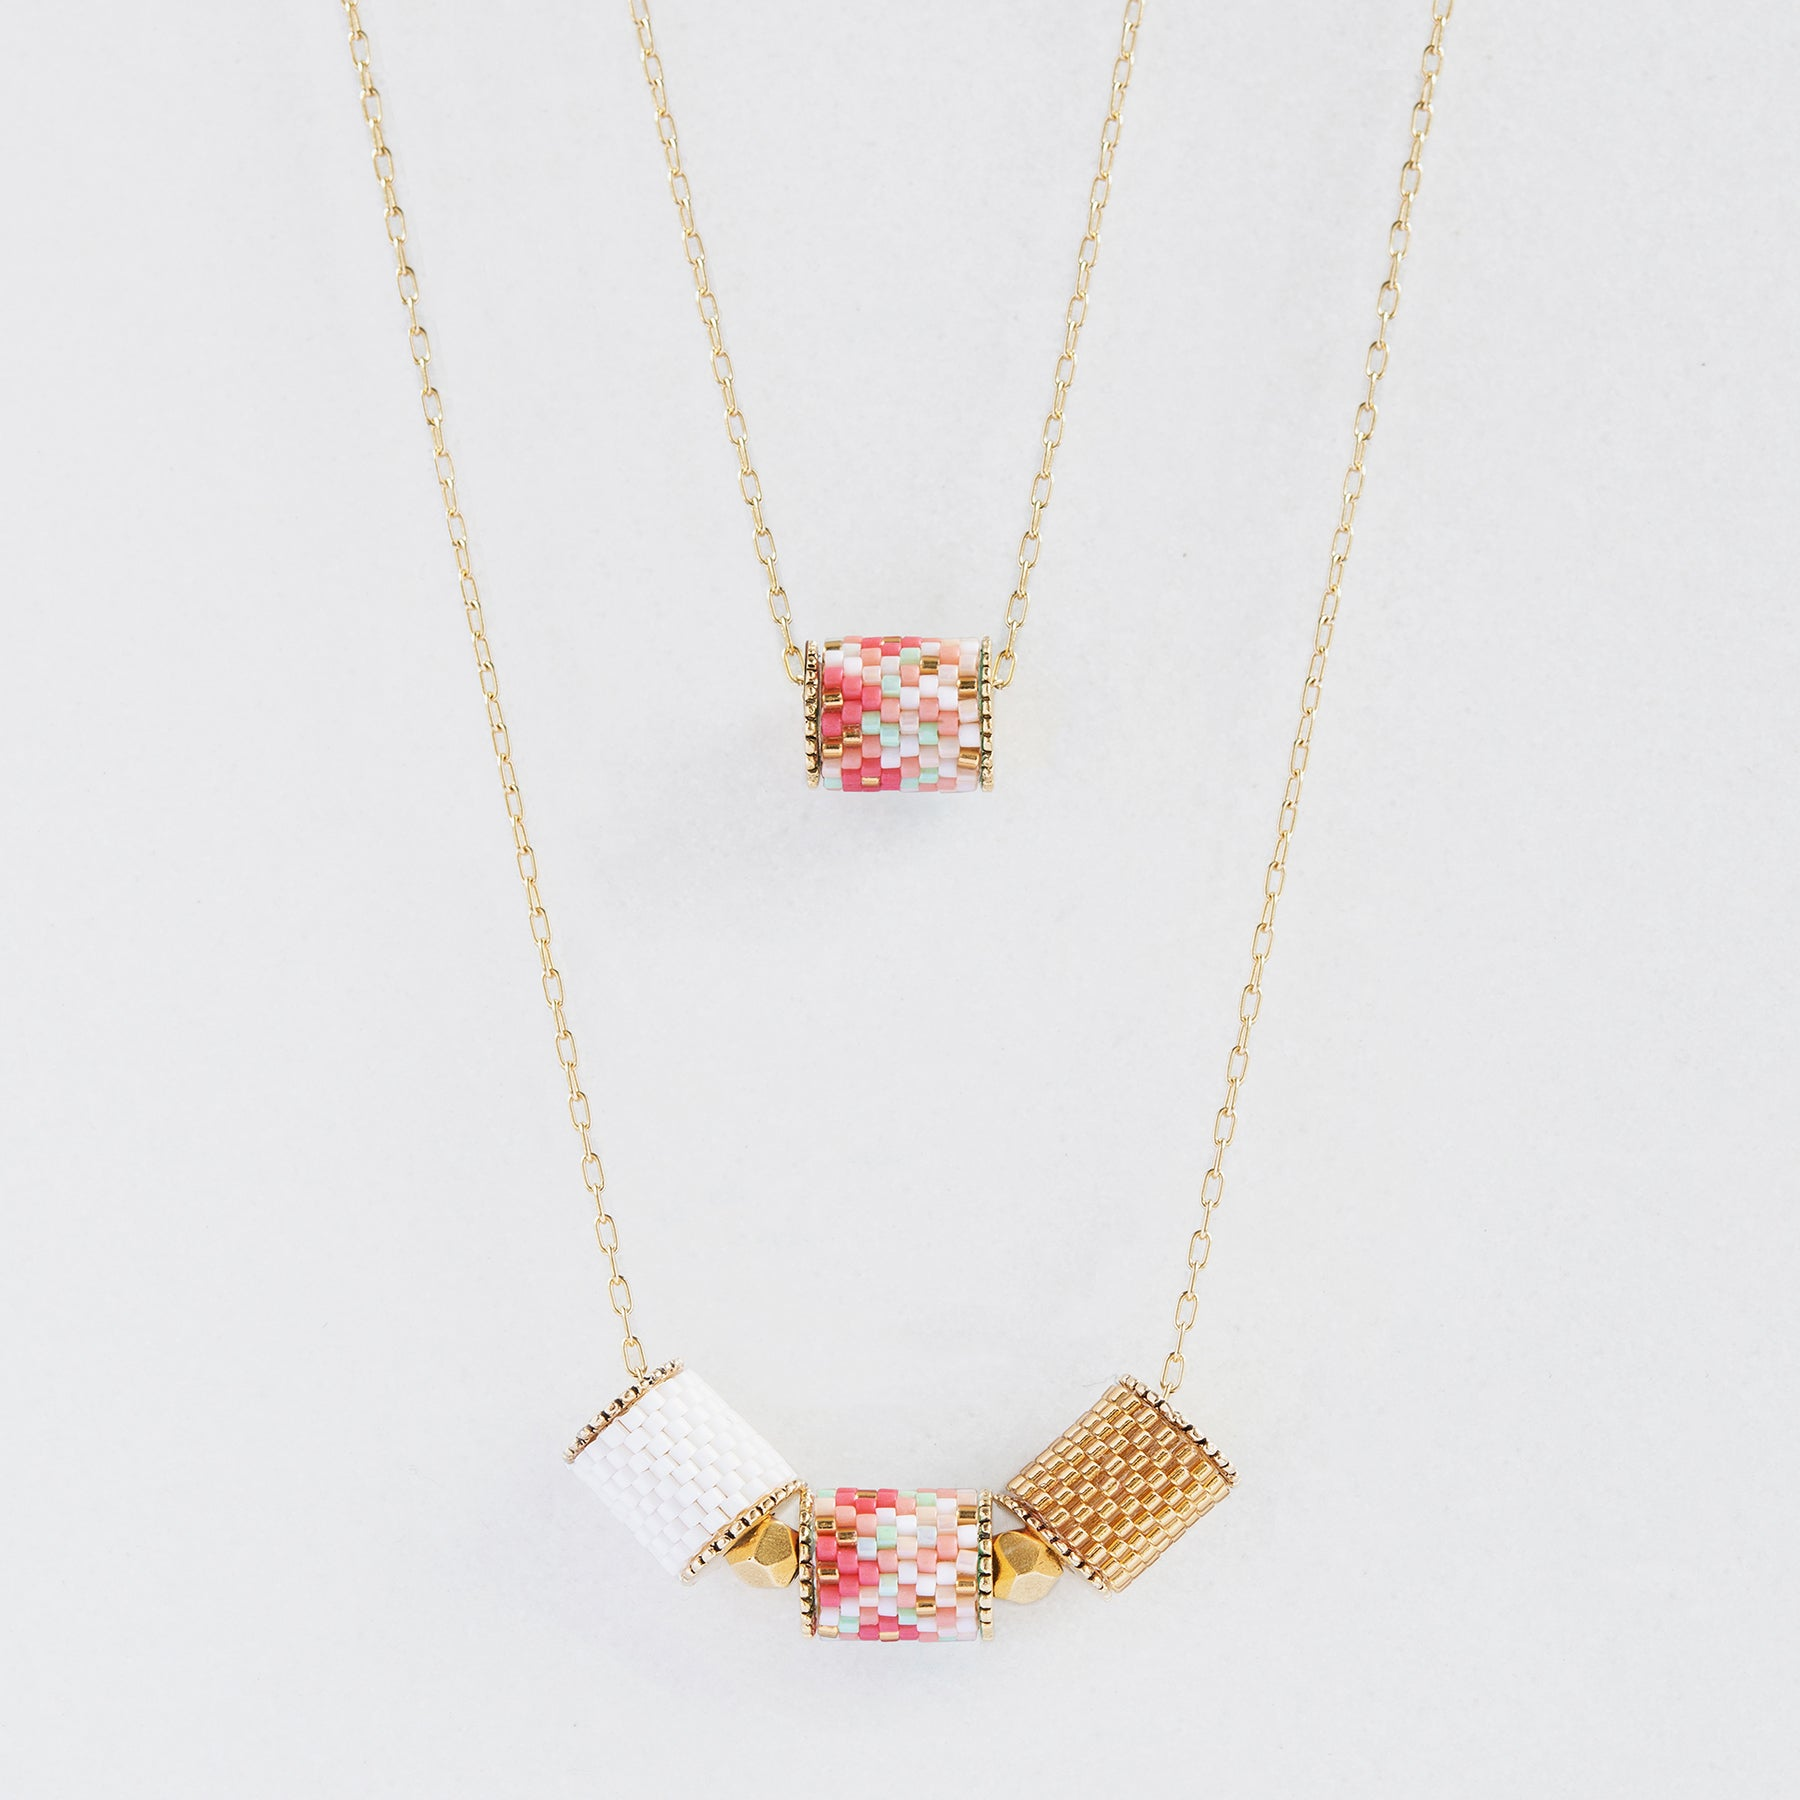 Artisan jewelry cherry blossom collection